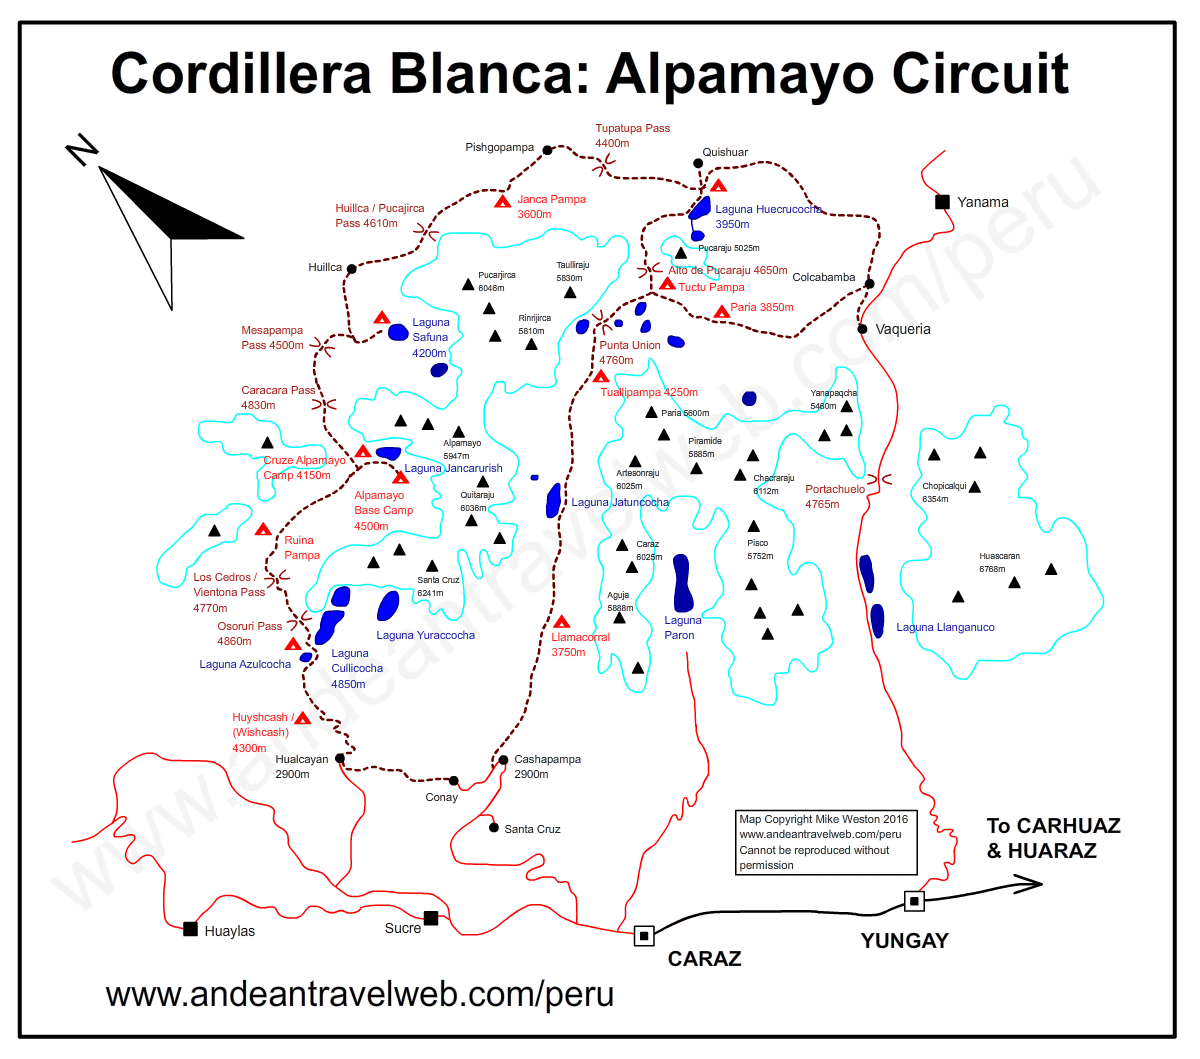 Map of the Alpamayo Circuit trek in the Cordillera Blanca, Peru